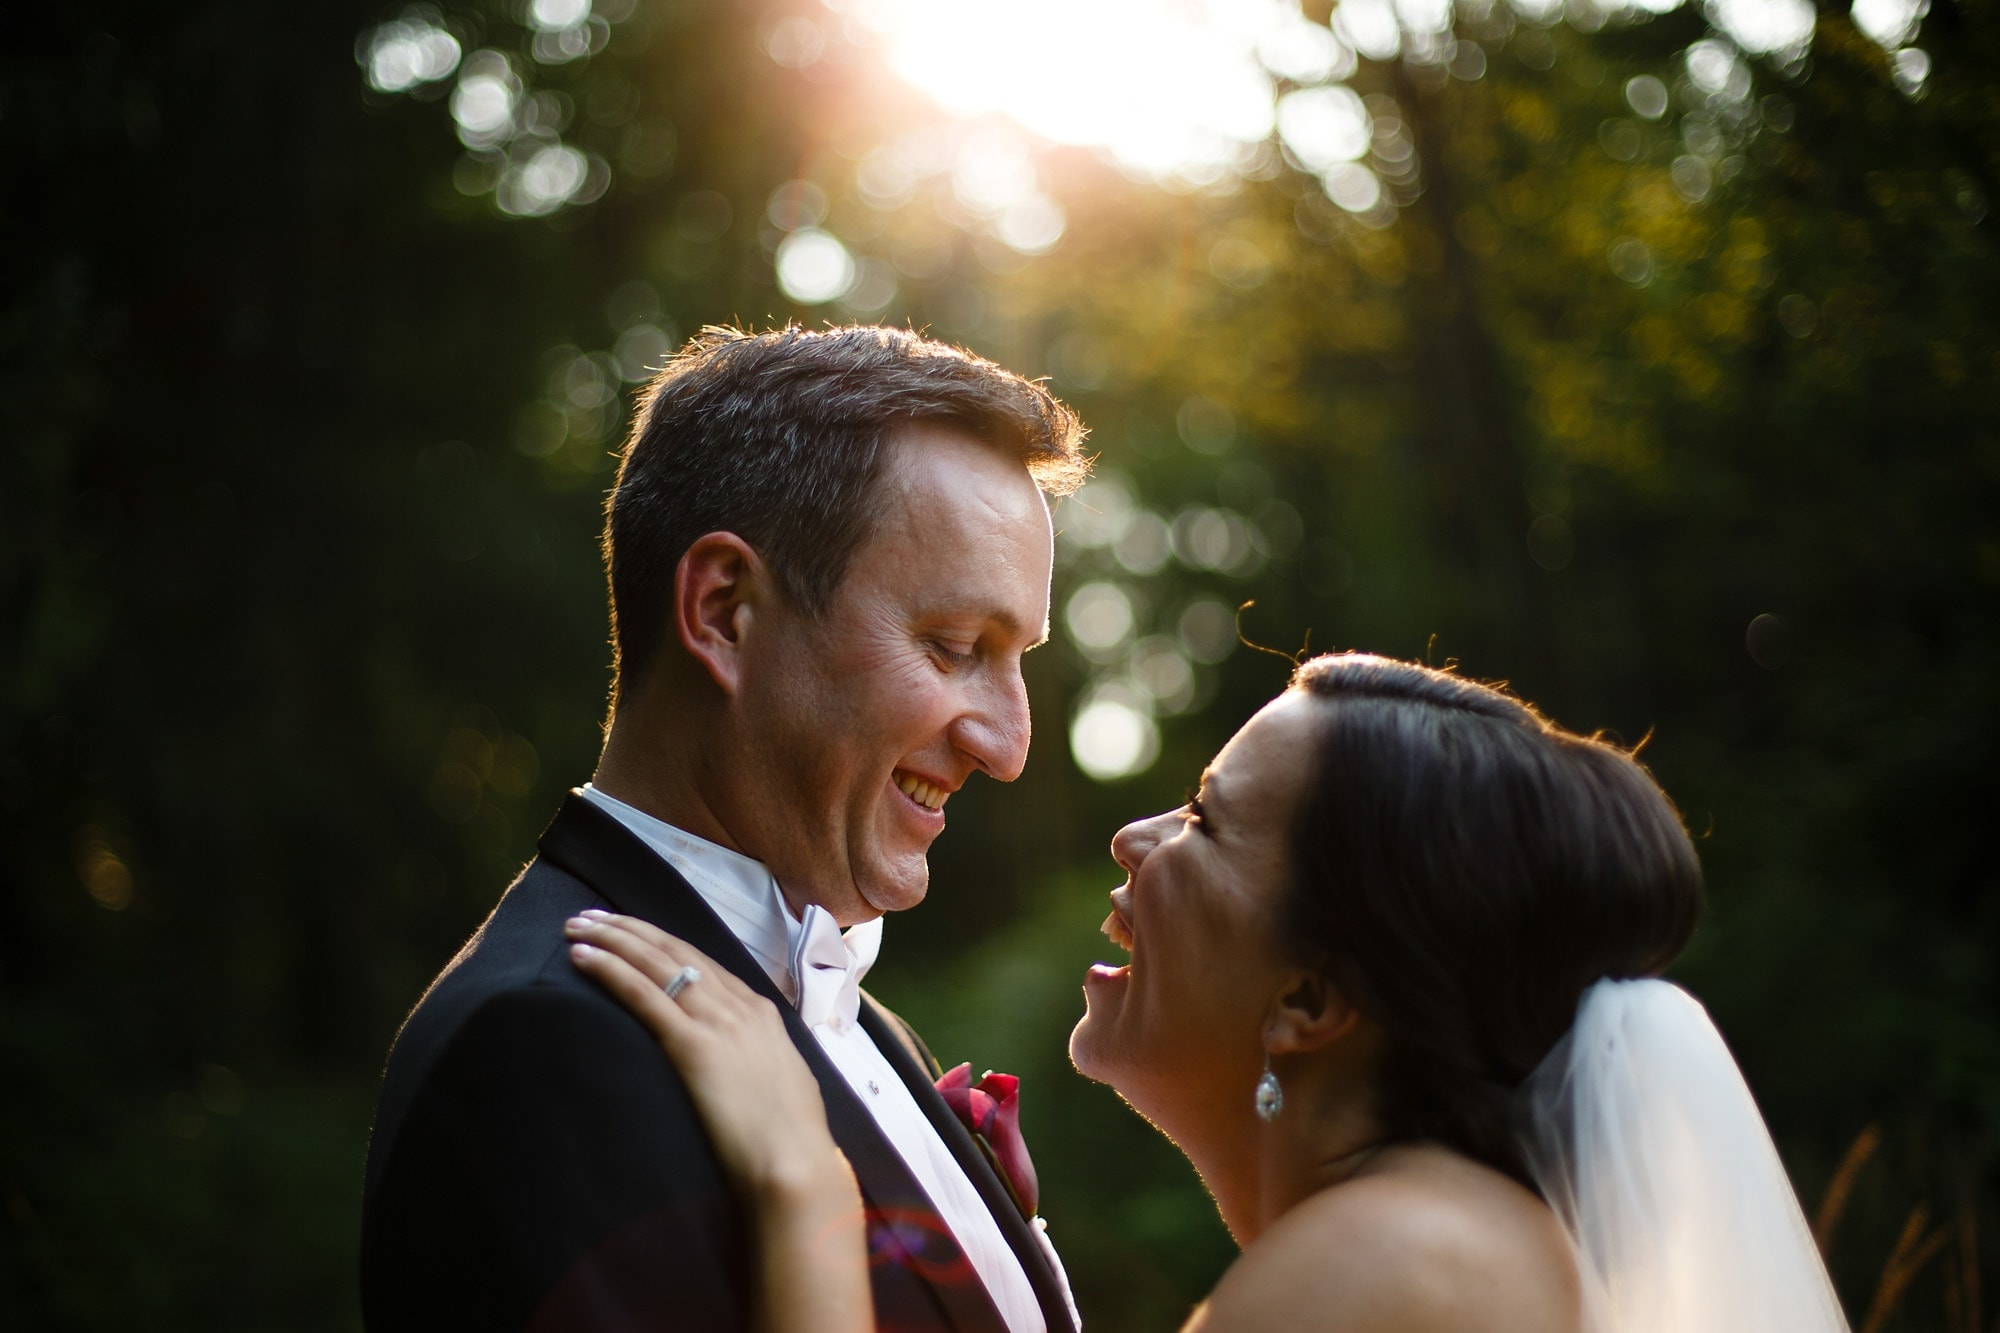 Allerton Park wedding photo from Megan and Manfred's celebration in Monticello, Illinois